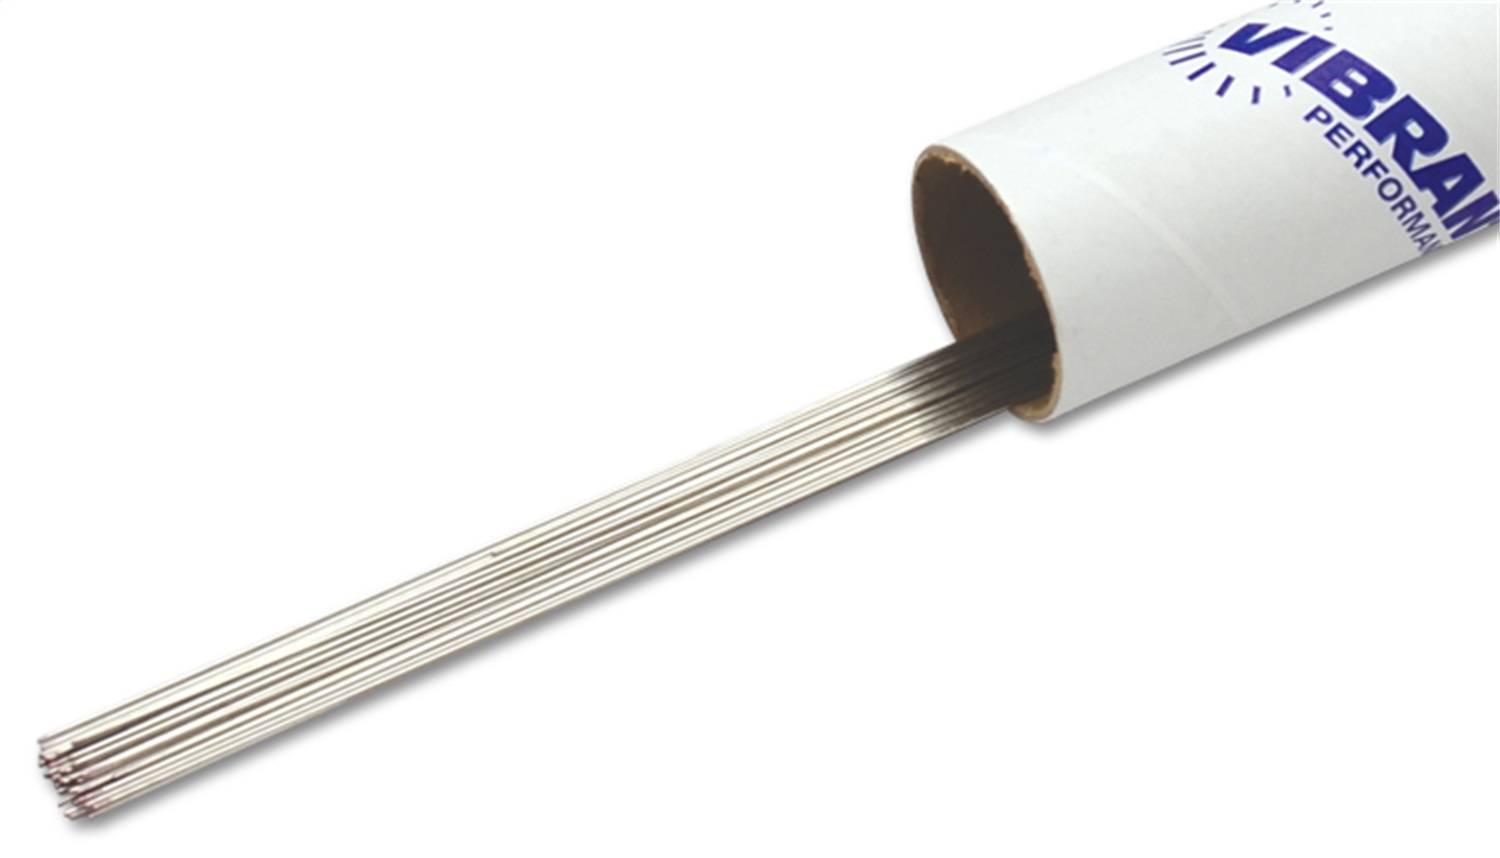 Vibrant Performance 29161 TIG Wire Stainless Steel ER308L